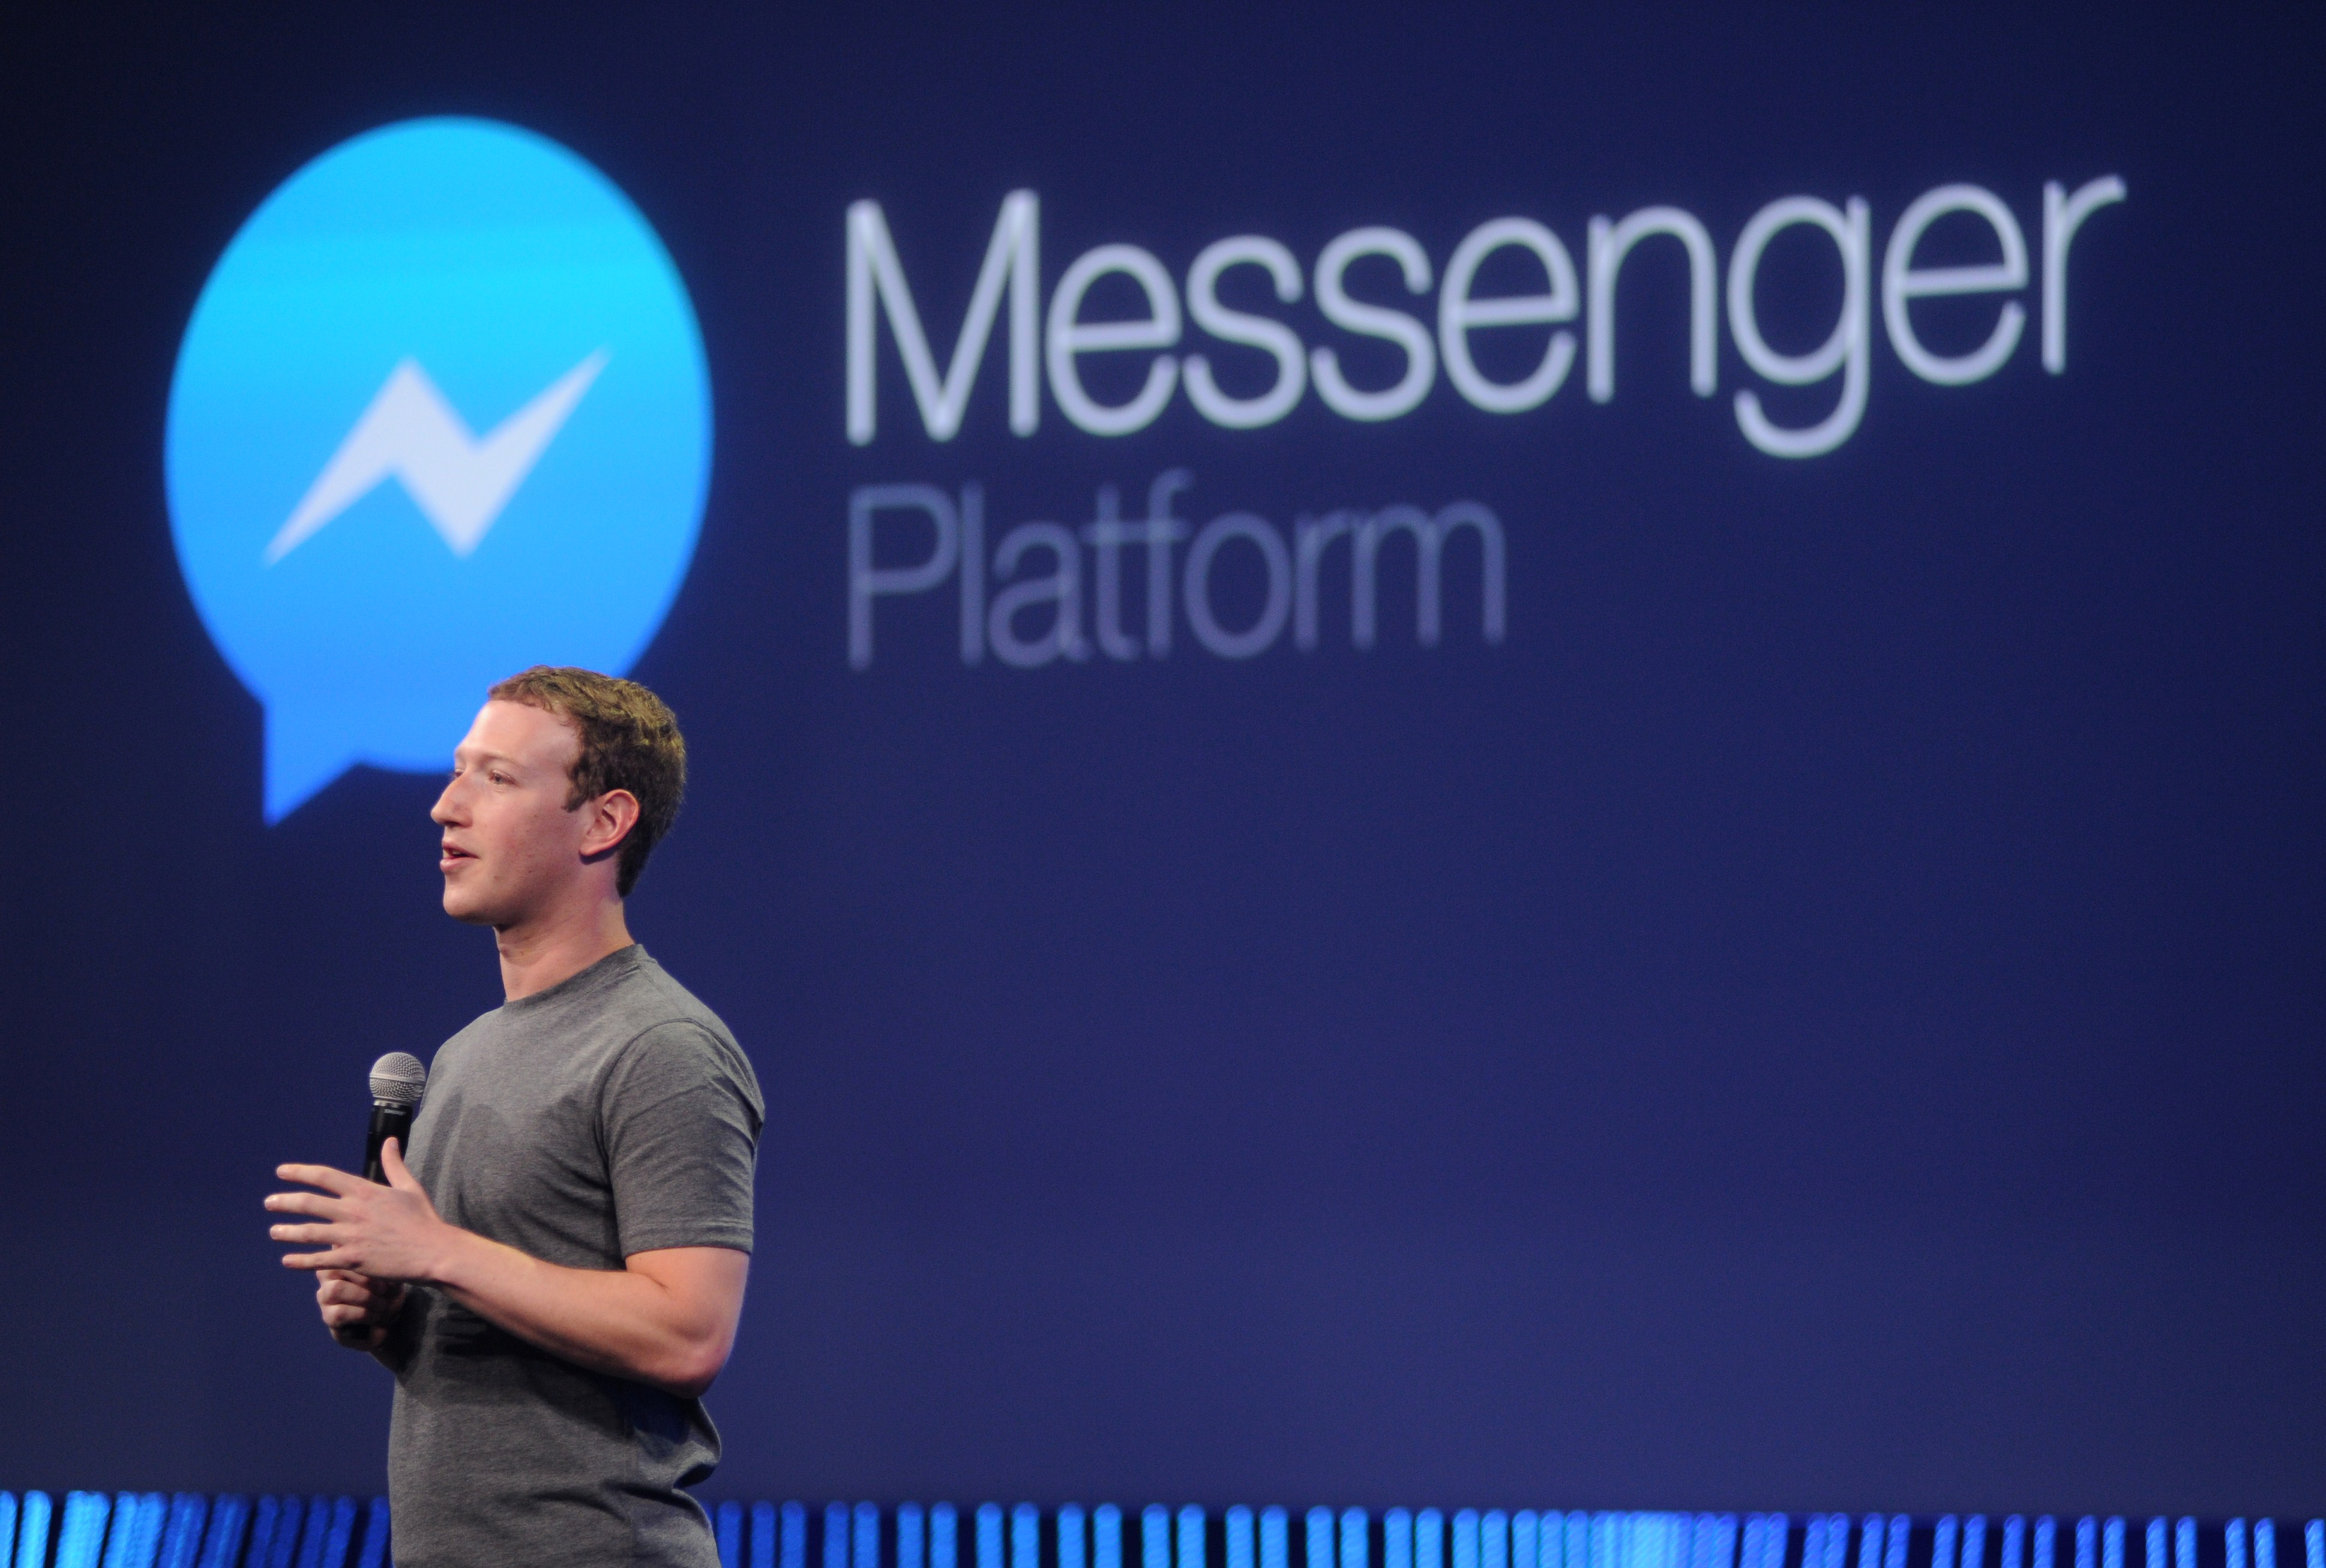 Facebook CEO Mark Zuckerberg introduces a new messenger platform at the F8 summit in San Francisco, California, on March 25, 2015. AFP PHOTO/JOSH EDELSON        (Photo credit should read Josh Edelson/AFP/Getty Images)